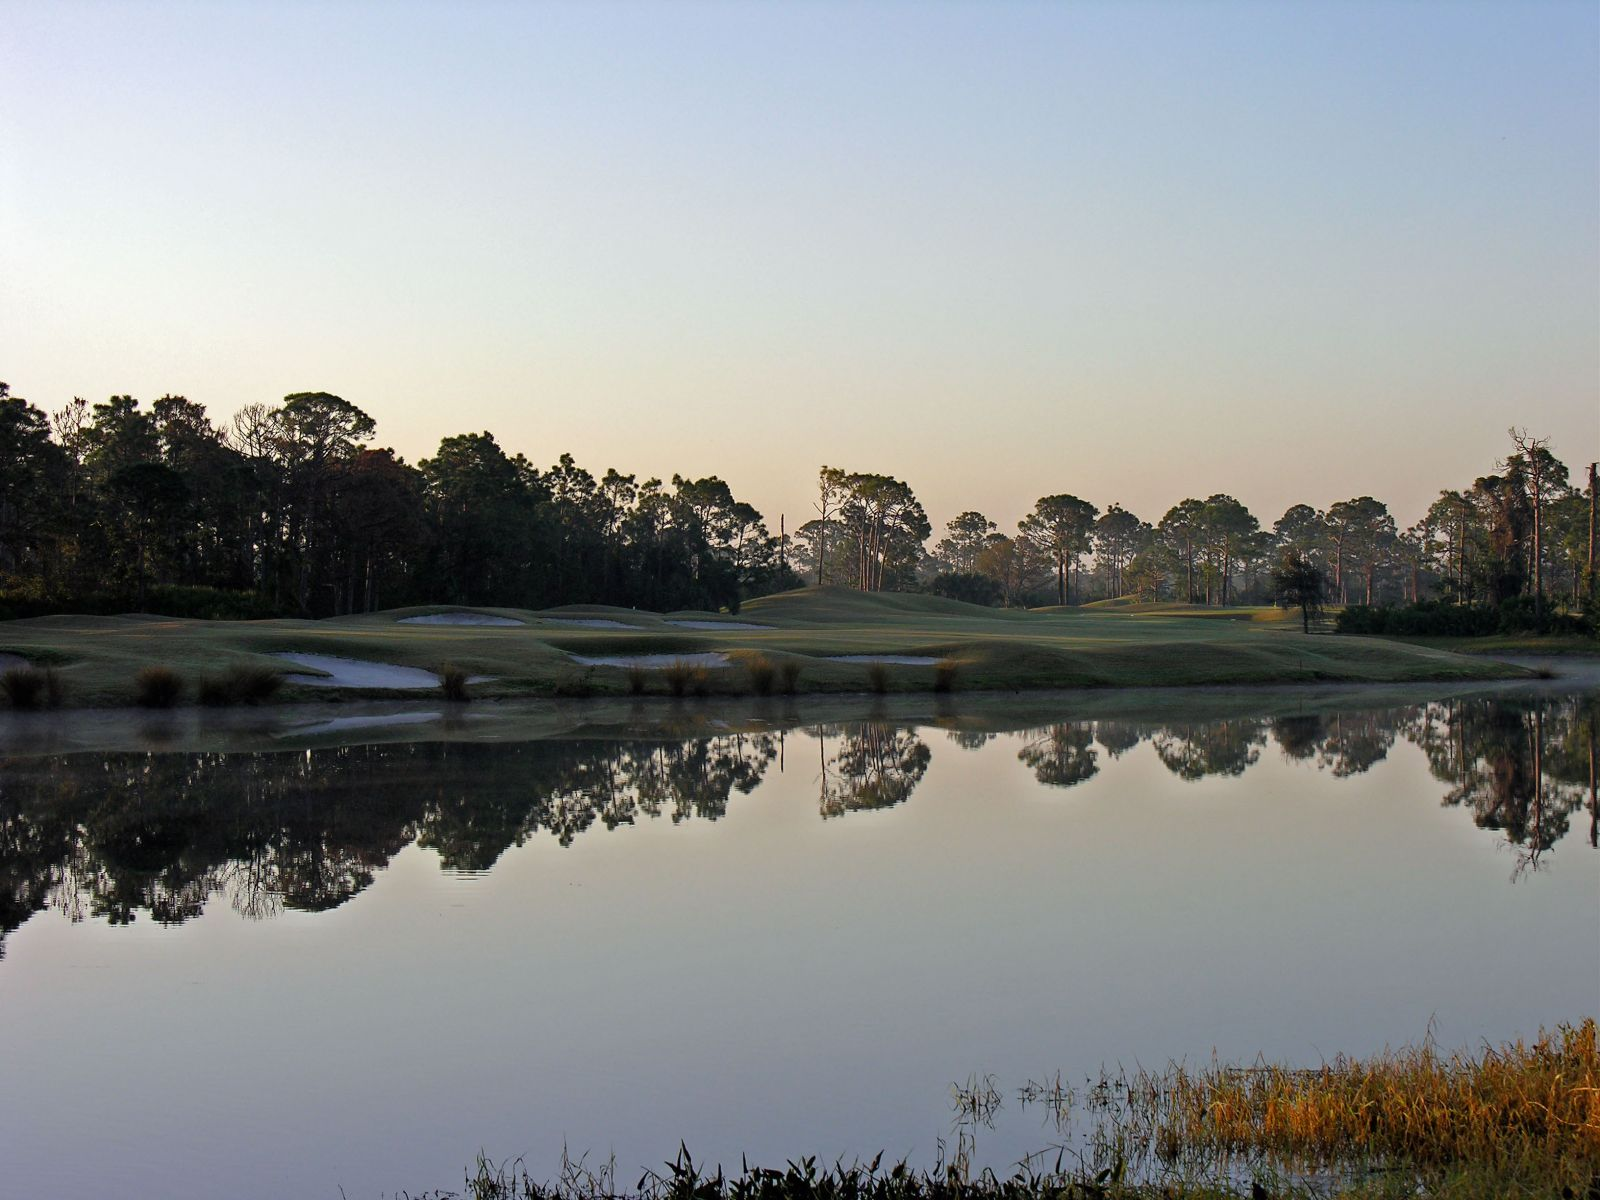 View of a pond on the course at Sandridge